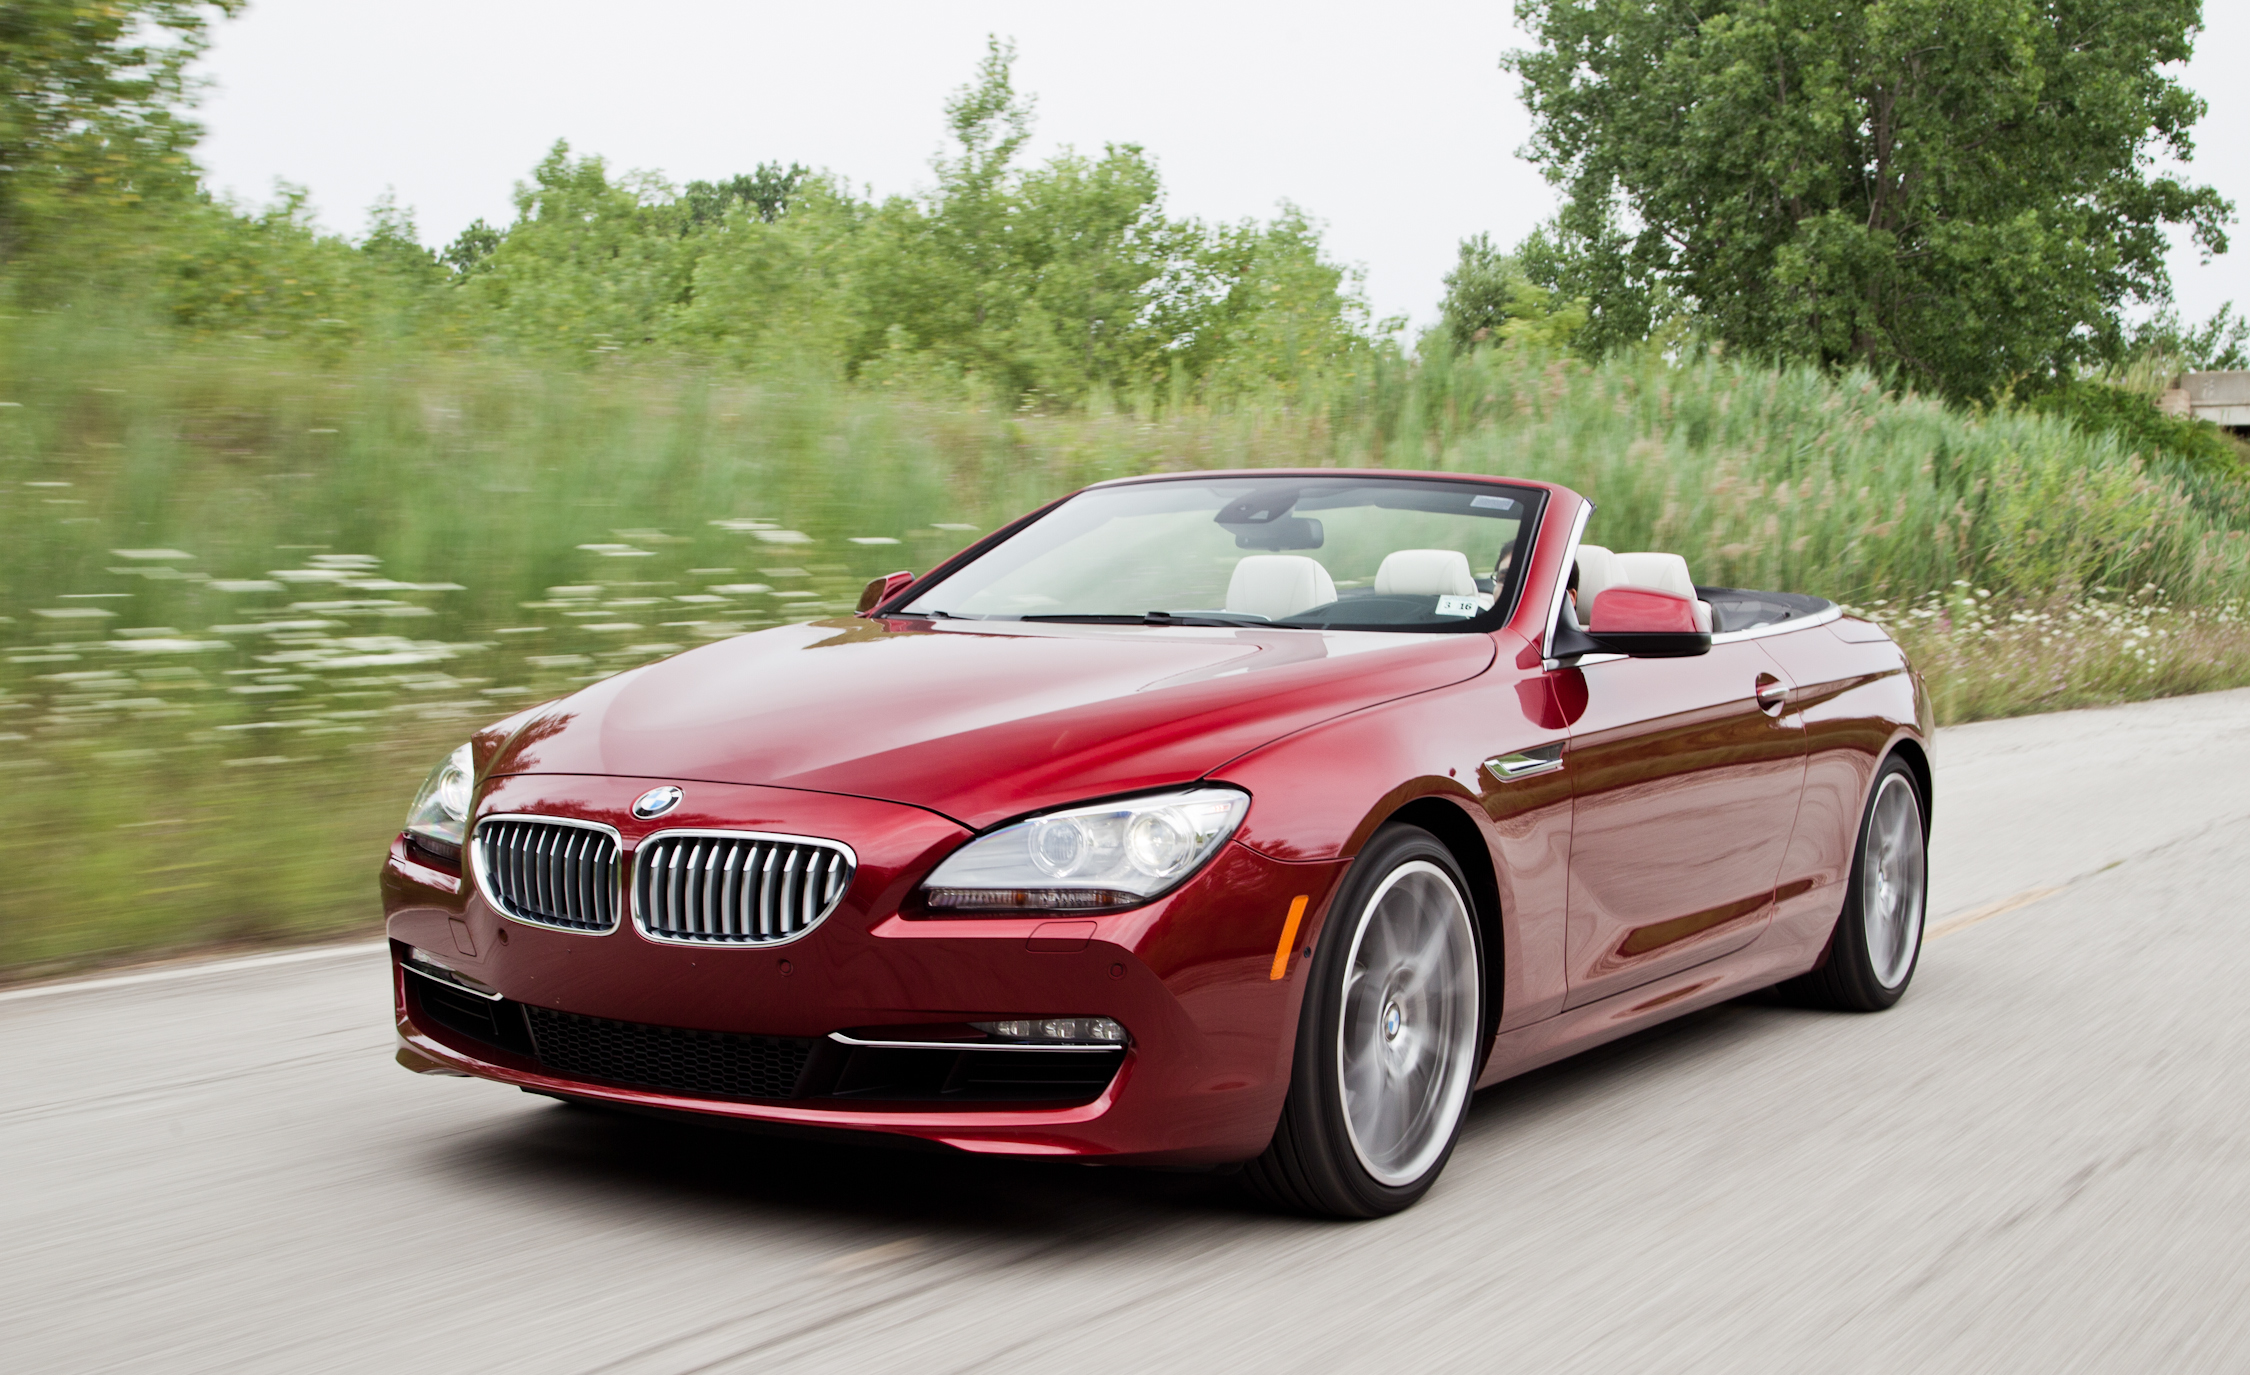 Featured Image of 2012 BMW 650i Convertible